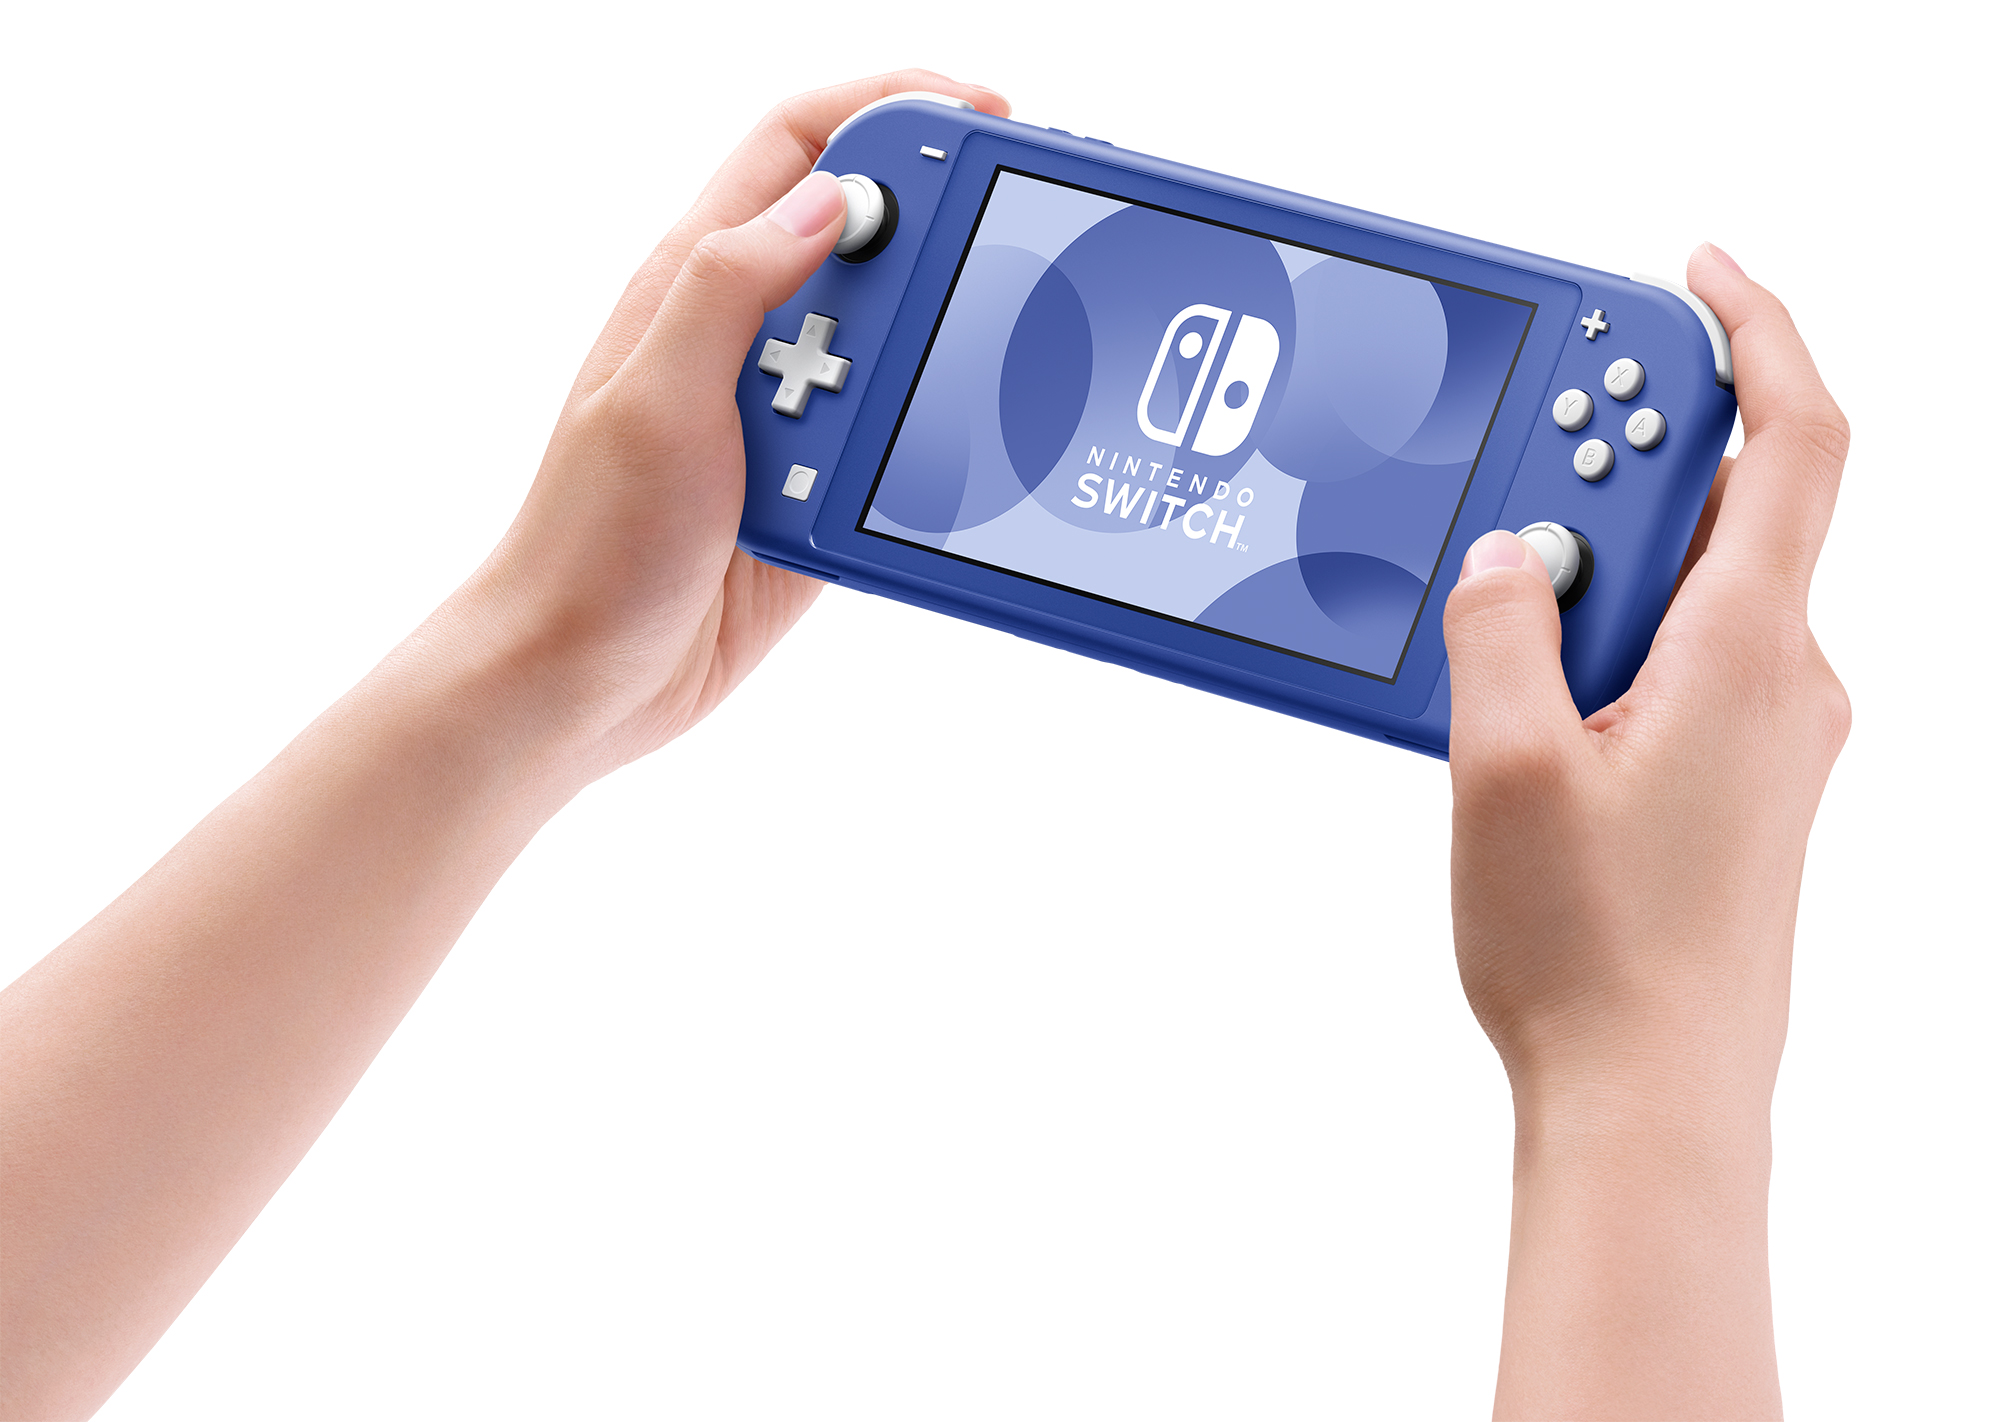 Two hands holding a cool blue Nintendo Switch Lite system